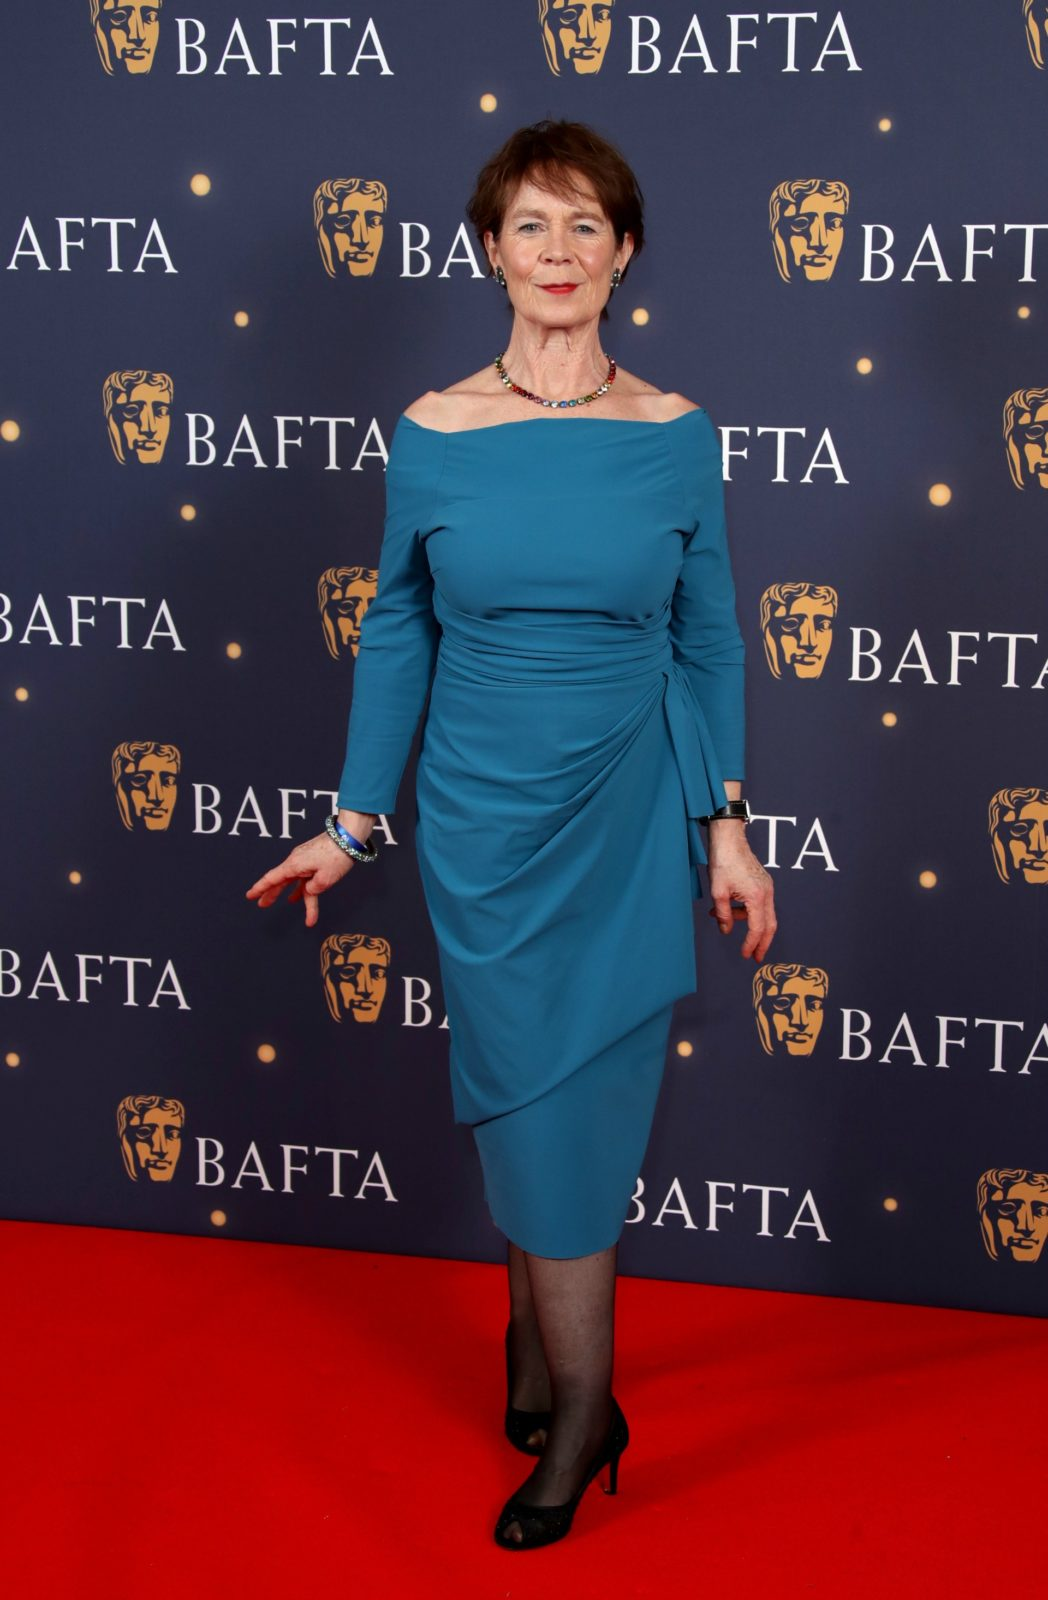 Celia Imrie wowed in a figure-hugging blue midi dress. Source: Getty